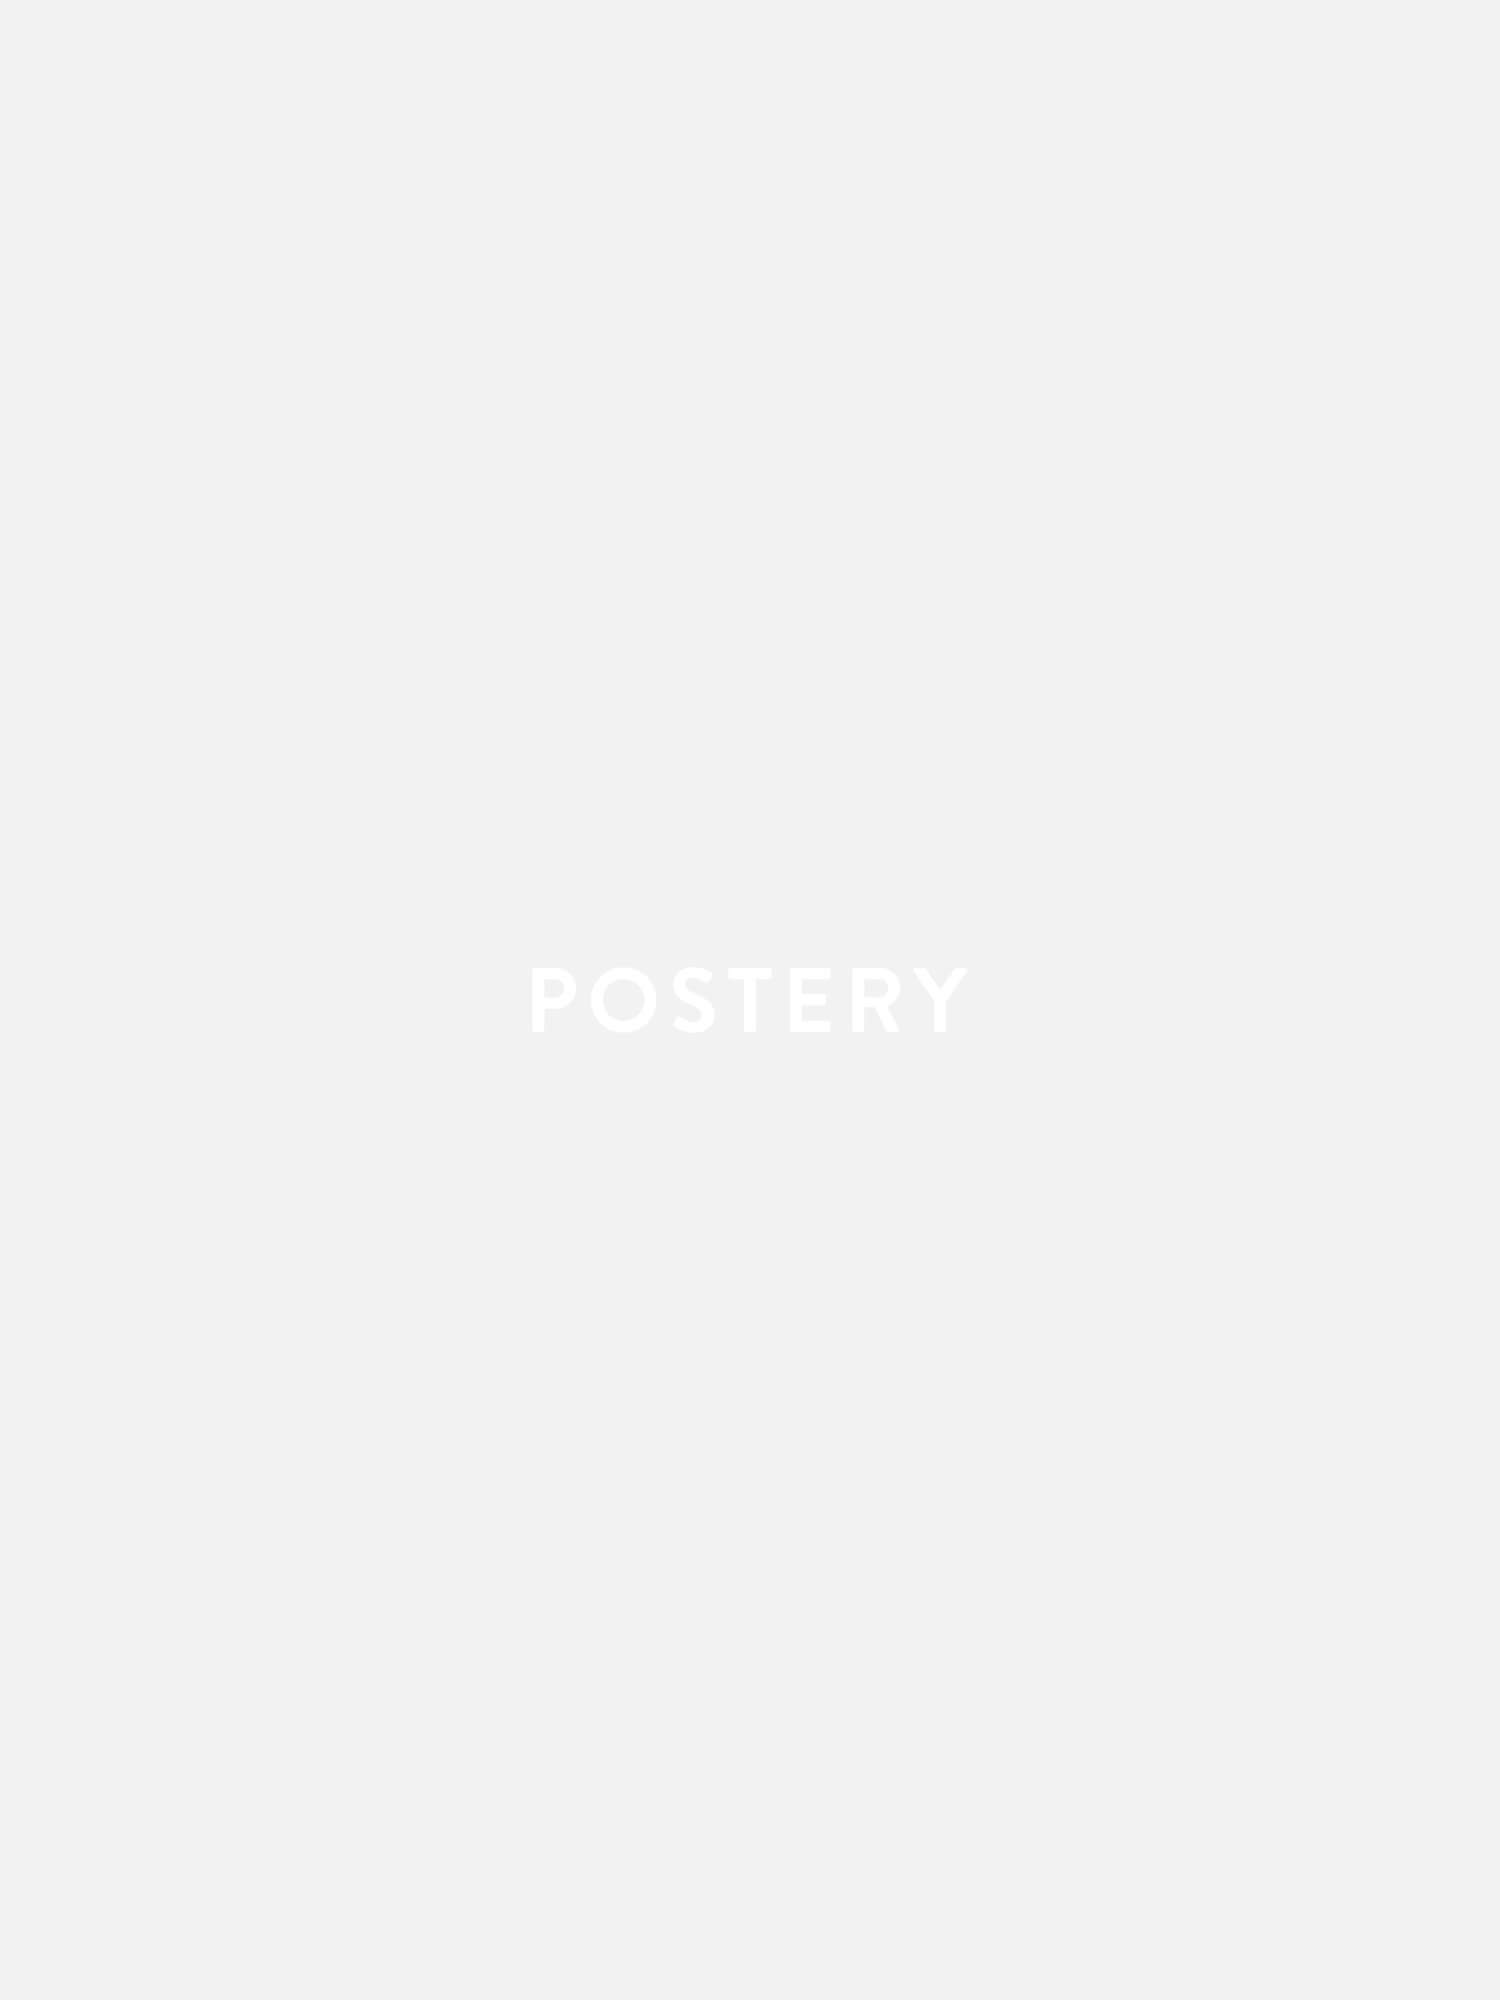 Waterfall View Poster